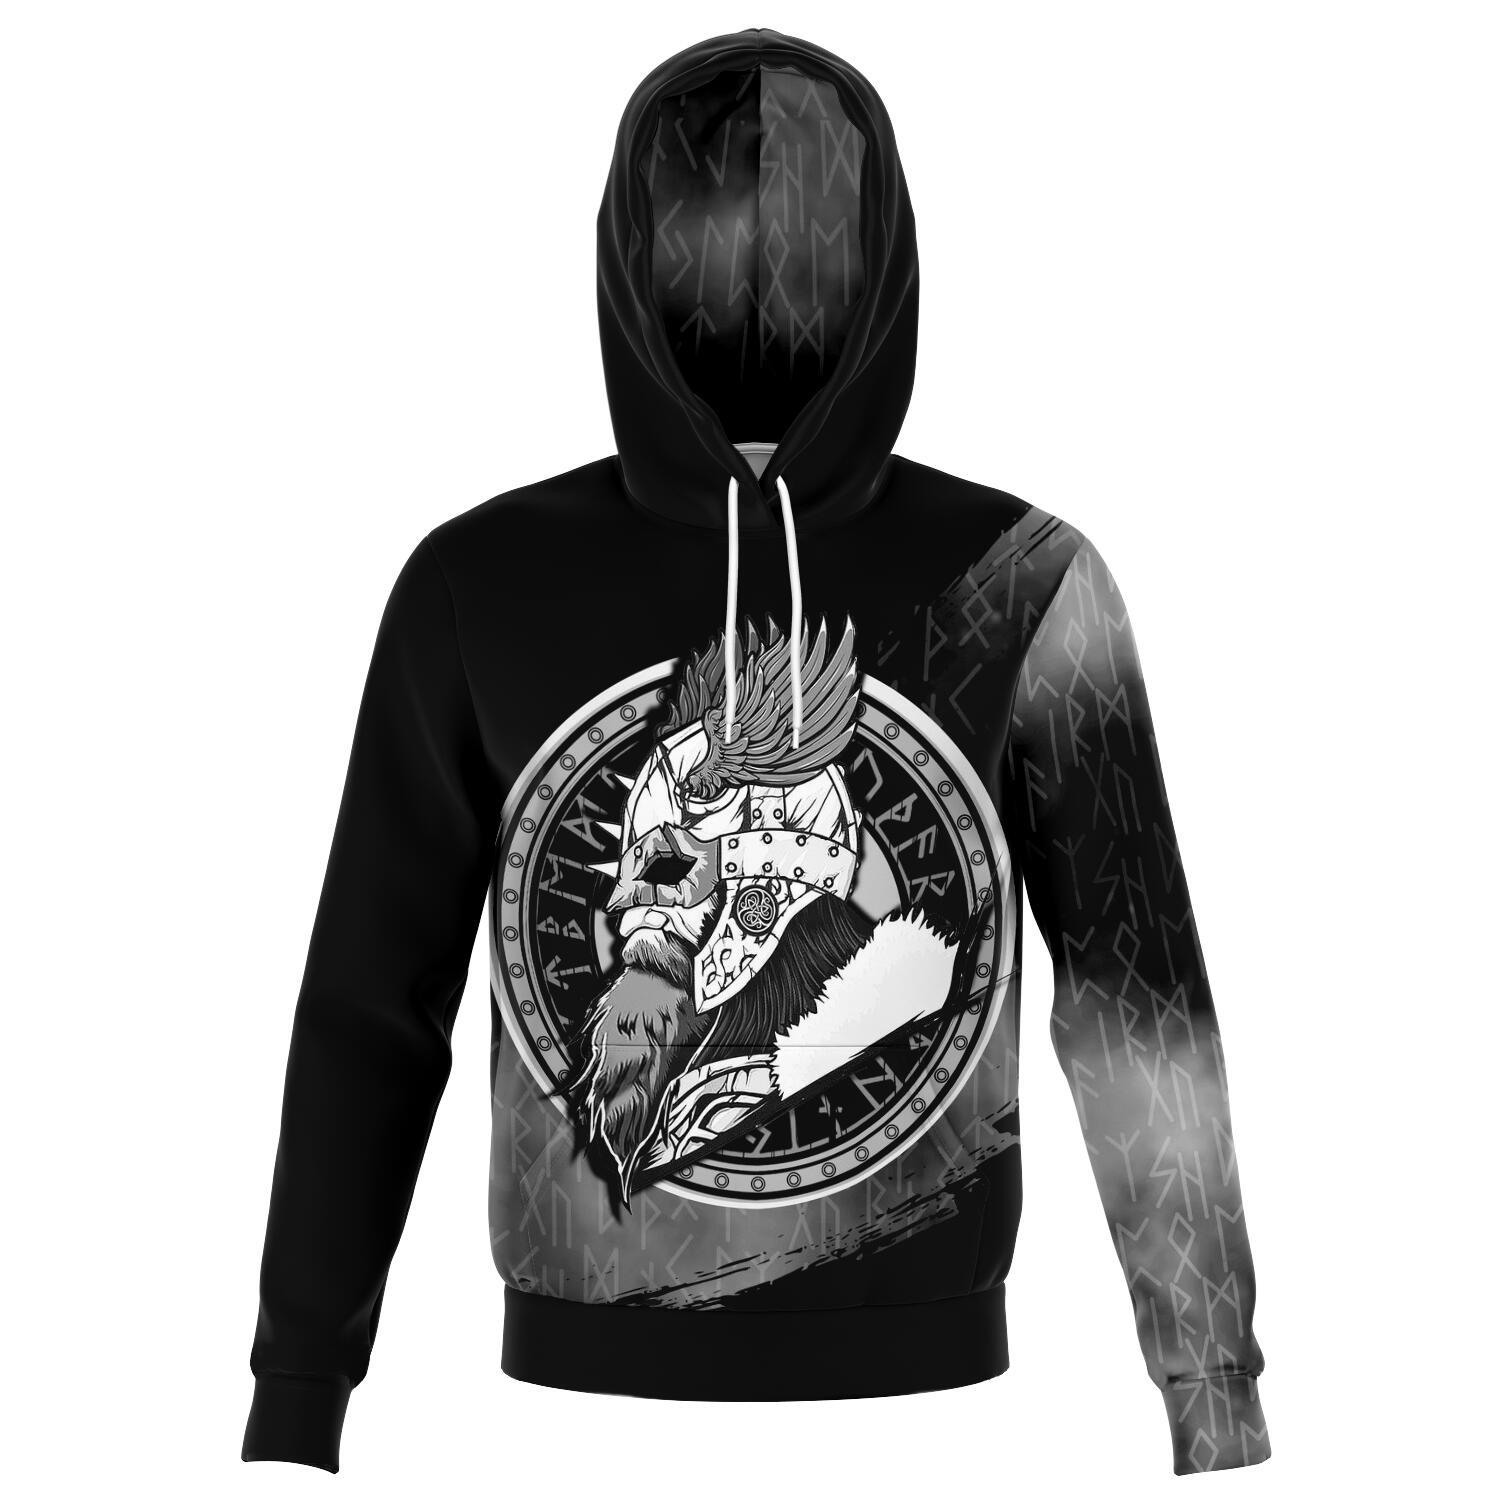 Viking Warrior Grey Hoodie with Mjolnir on the Back